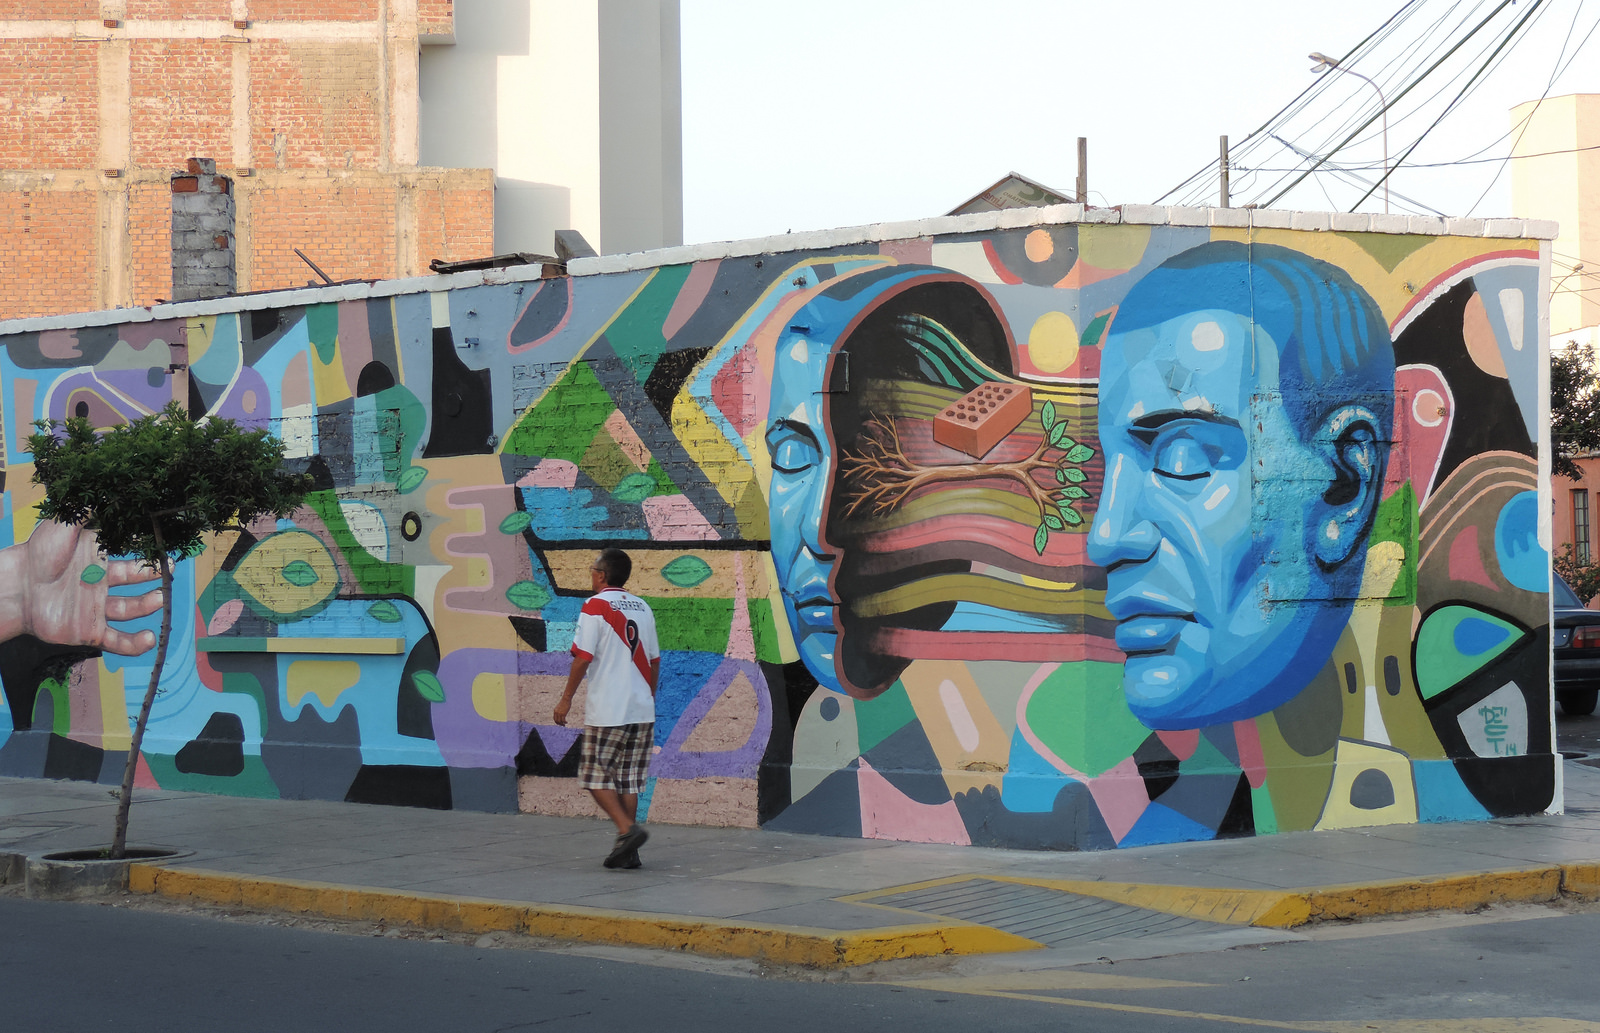 el-decertor-afliccion-e-incertidumbre-new-mural-for-mirafau-04